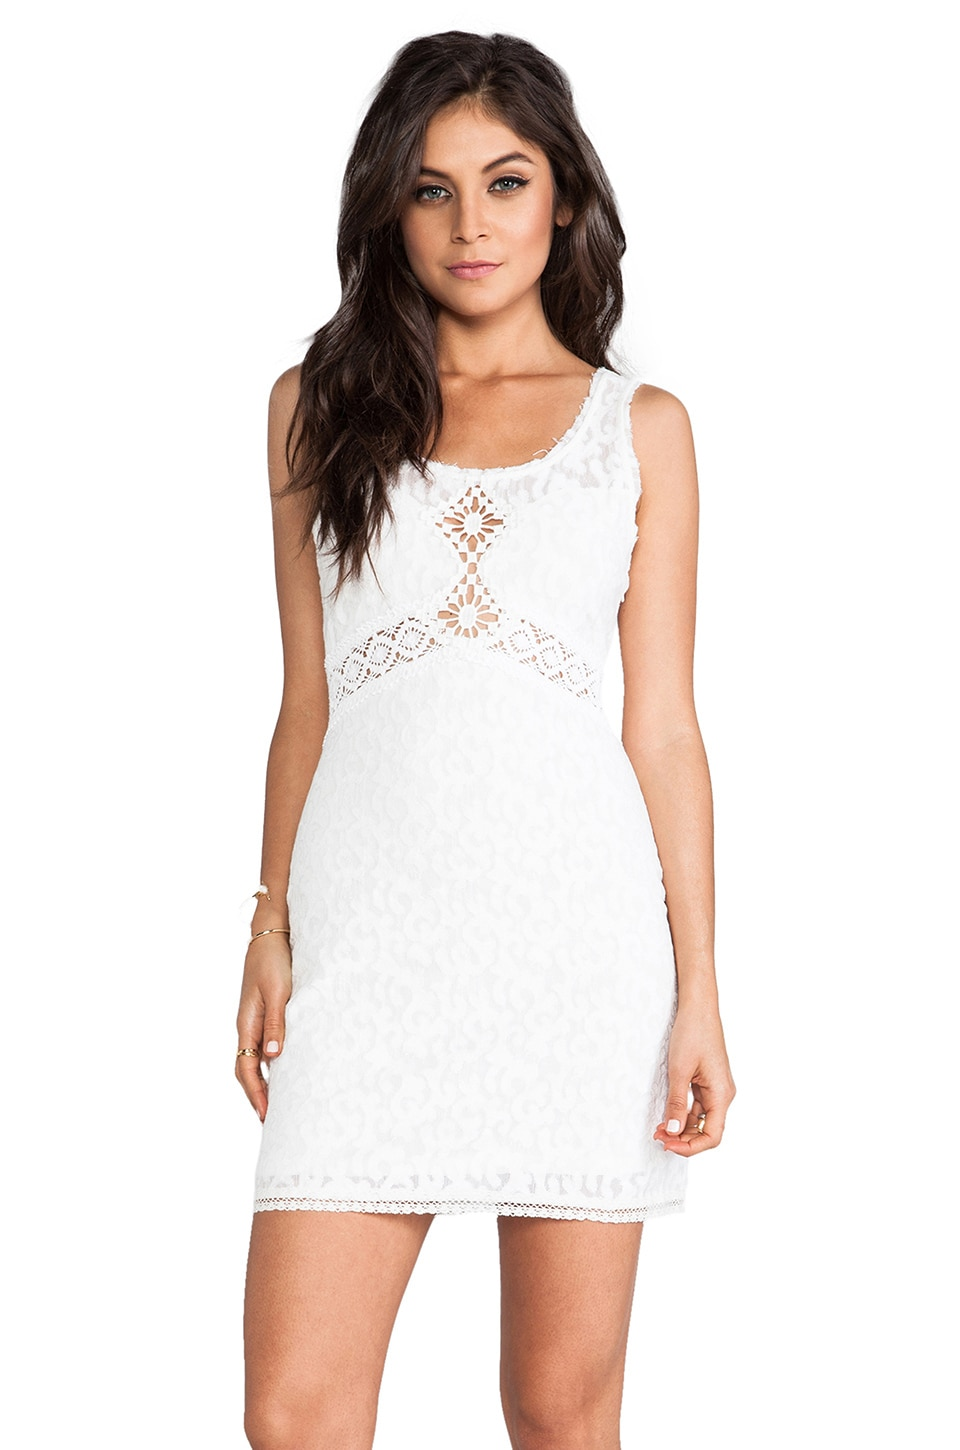 Free People Daisy Chain Shift Dress in White Combo